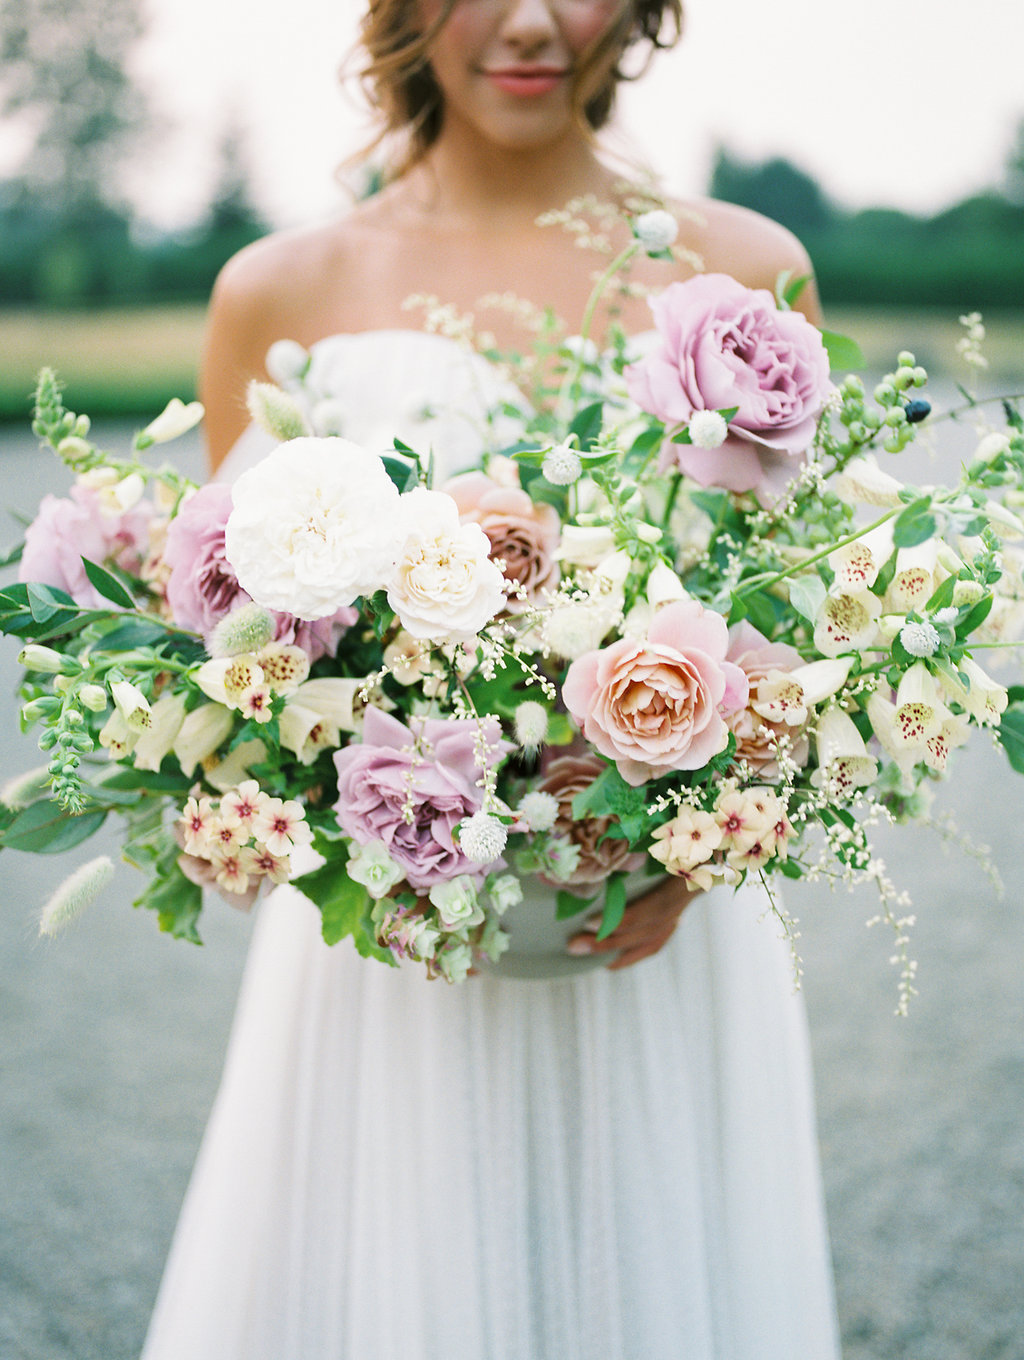 LuxProvenceWeddingInspired-SavanMentorshipbyJonandMochPhotography(73of75).jpg